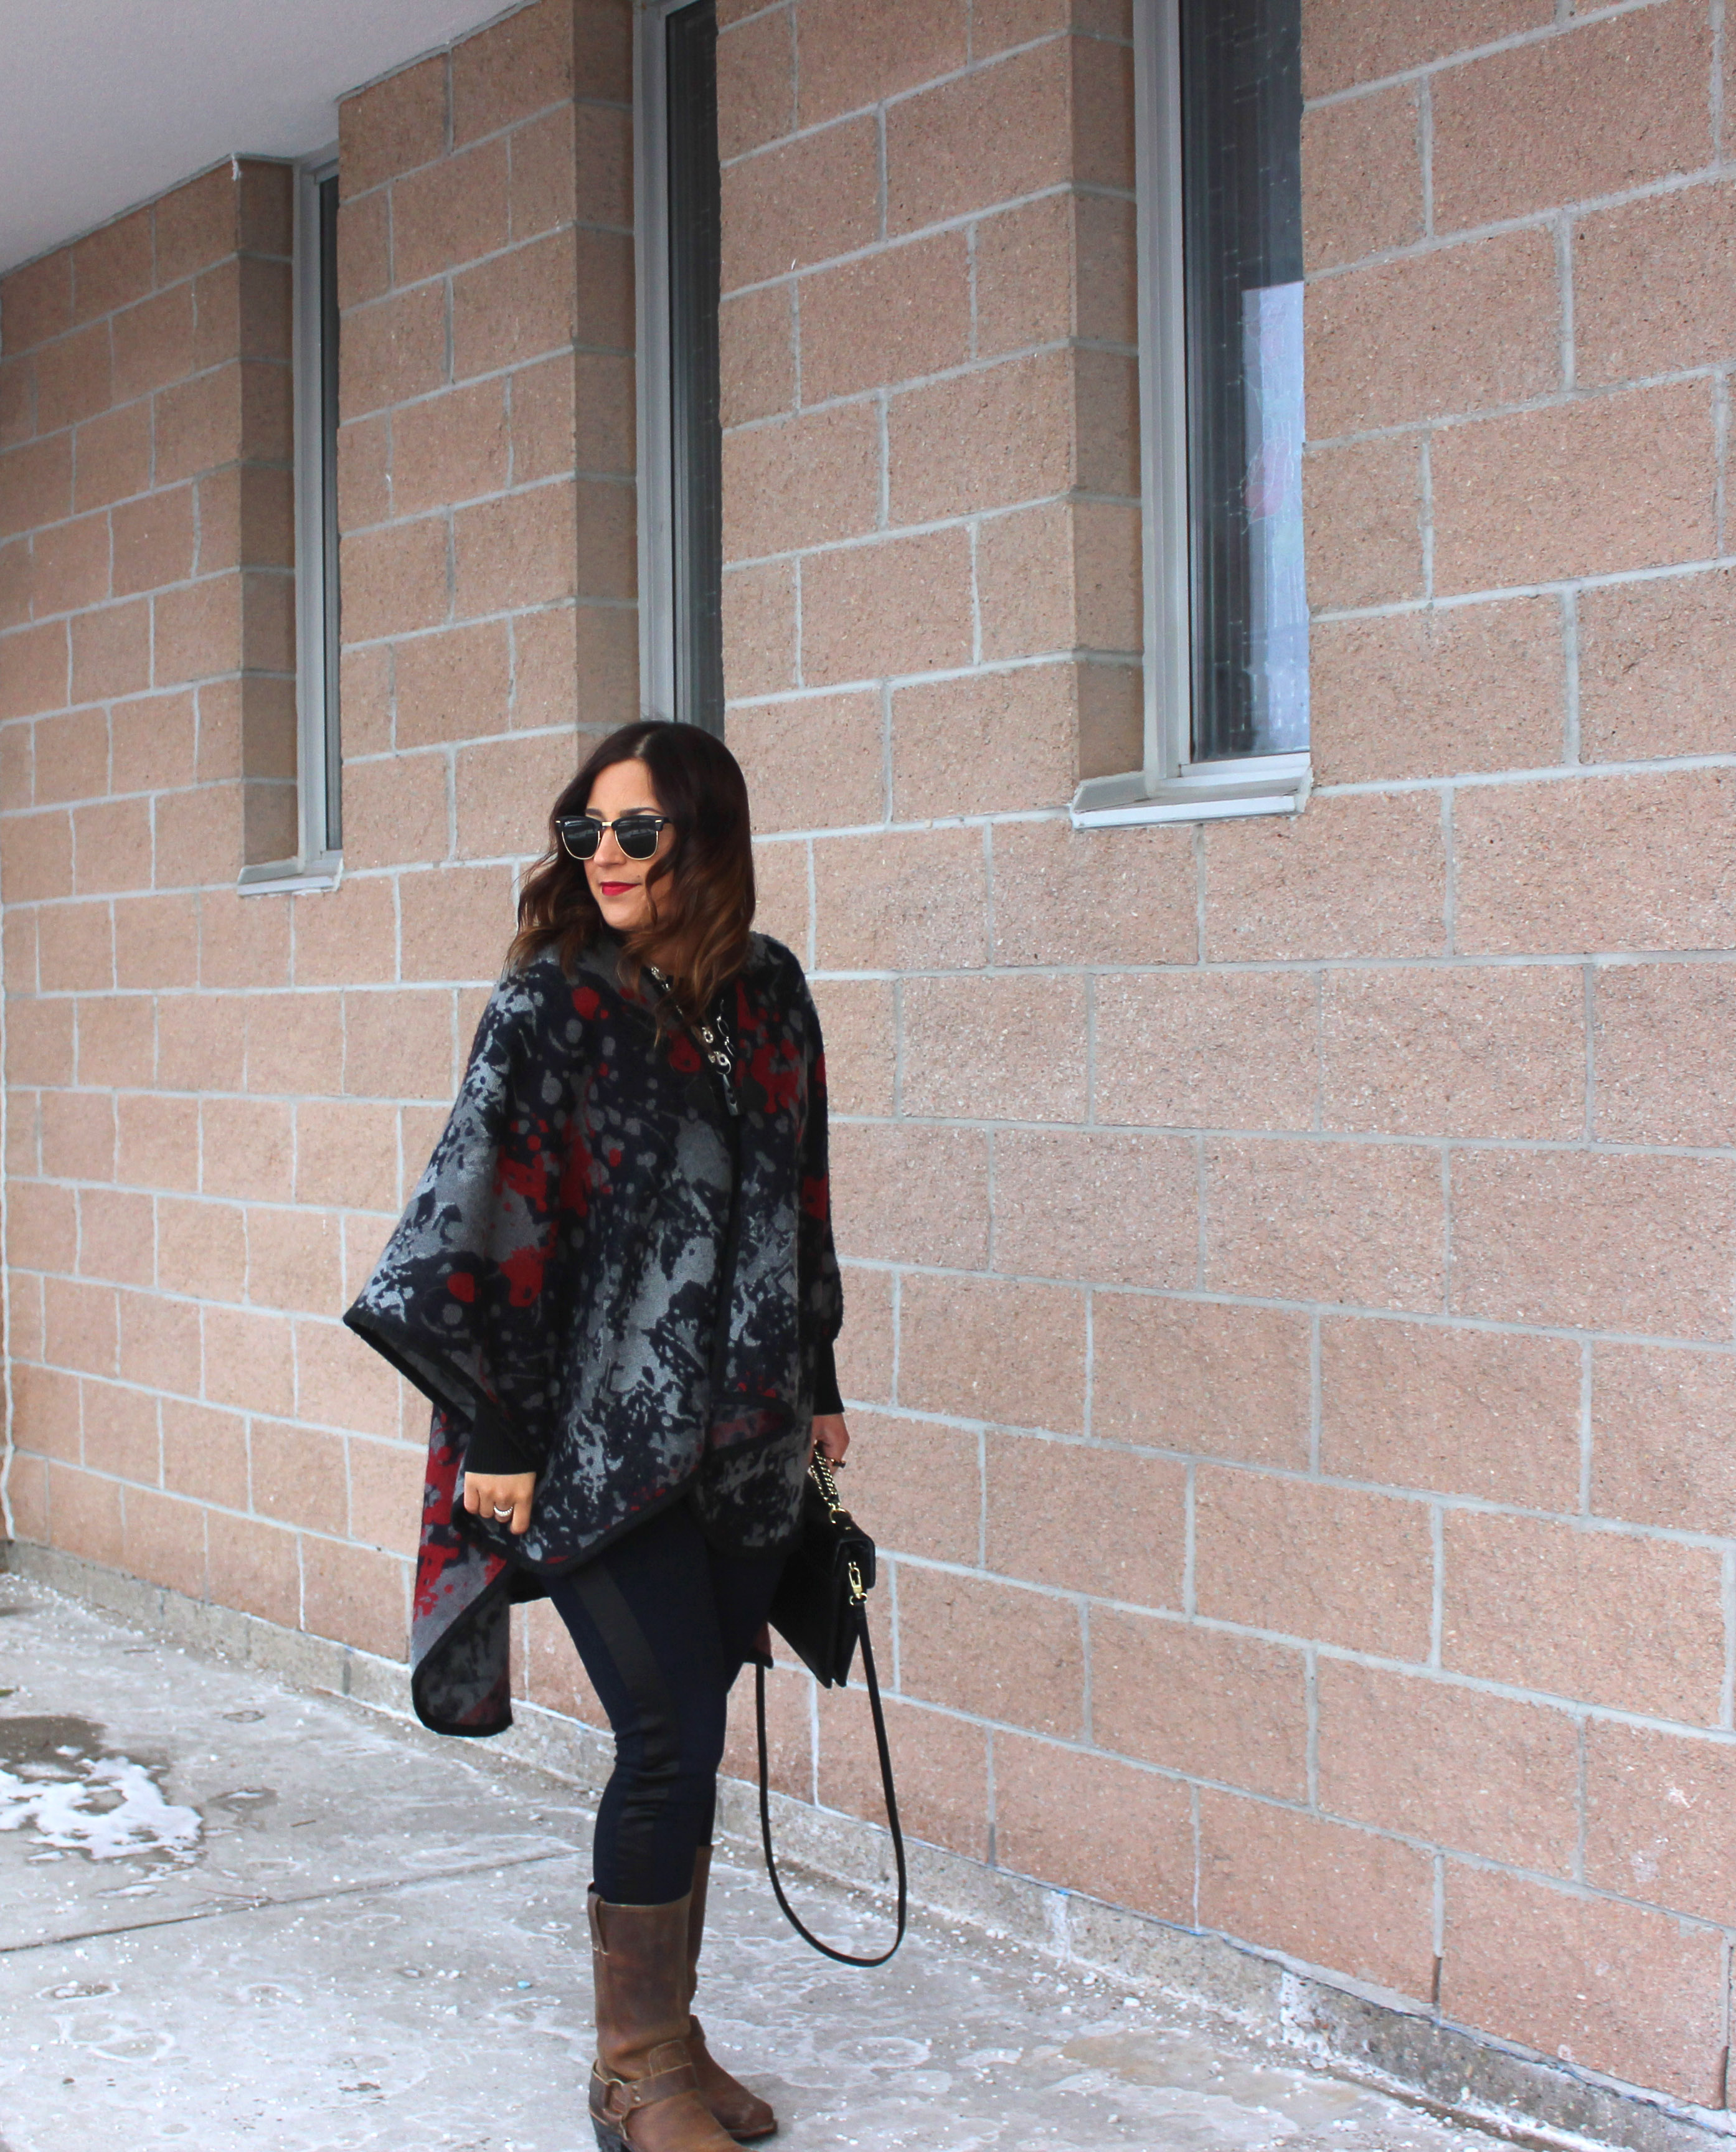 How to update your winter wardrobe with bold accessories, as seen on Toronto Style blogger